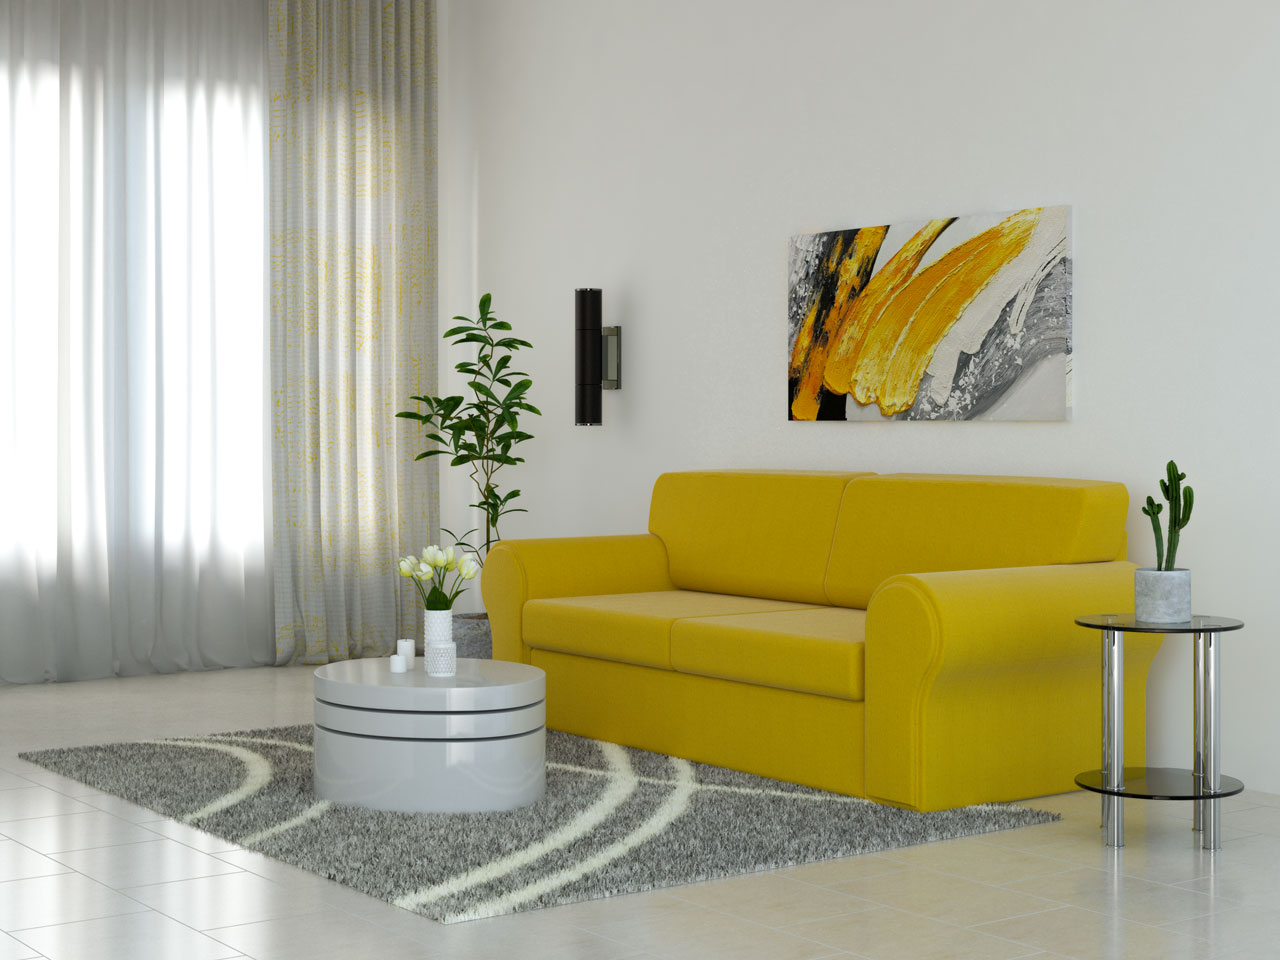 Gray rug with yellow couch